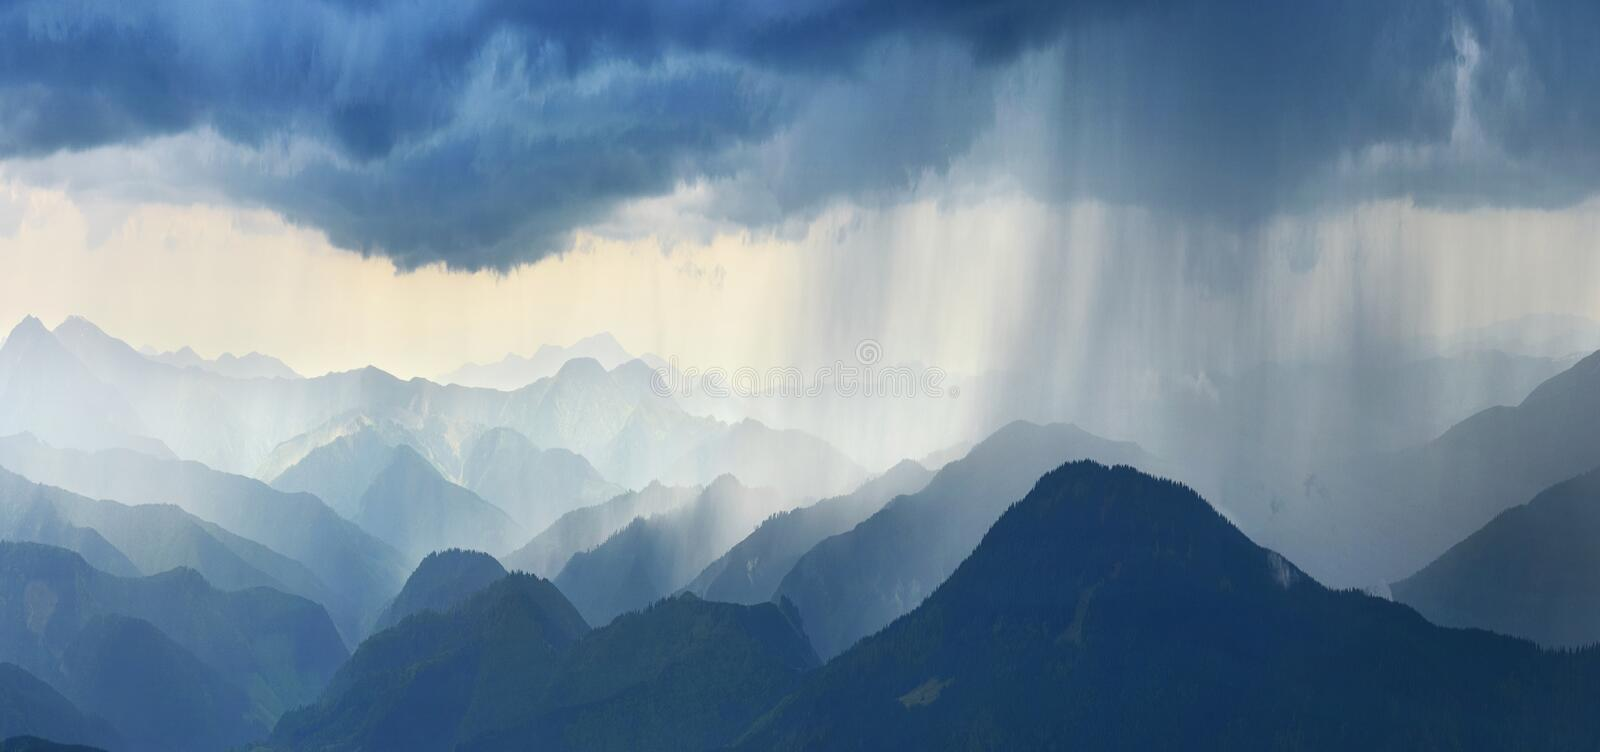 Rain in mountains. Heavy rain in spring mountains royalty free stock images